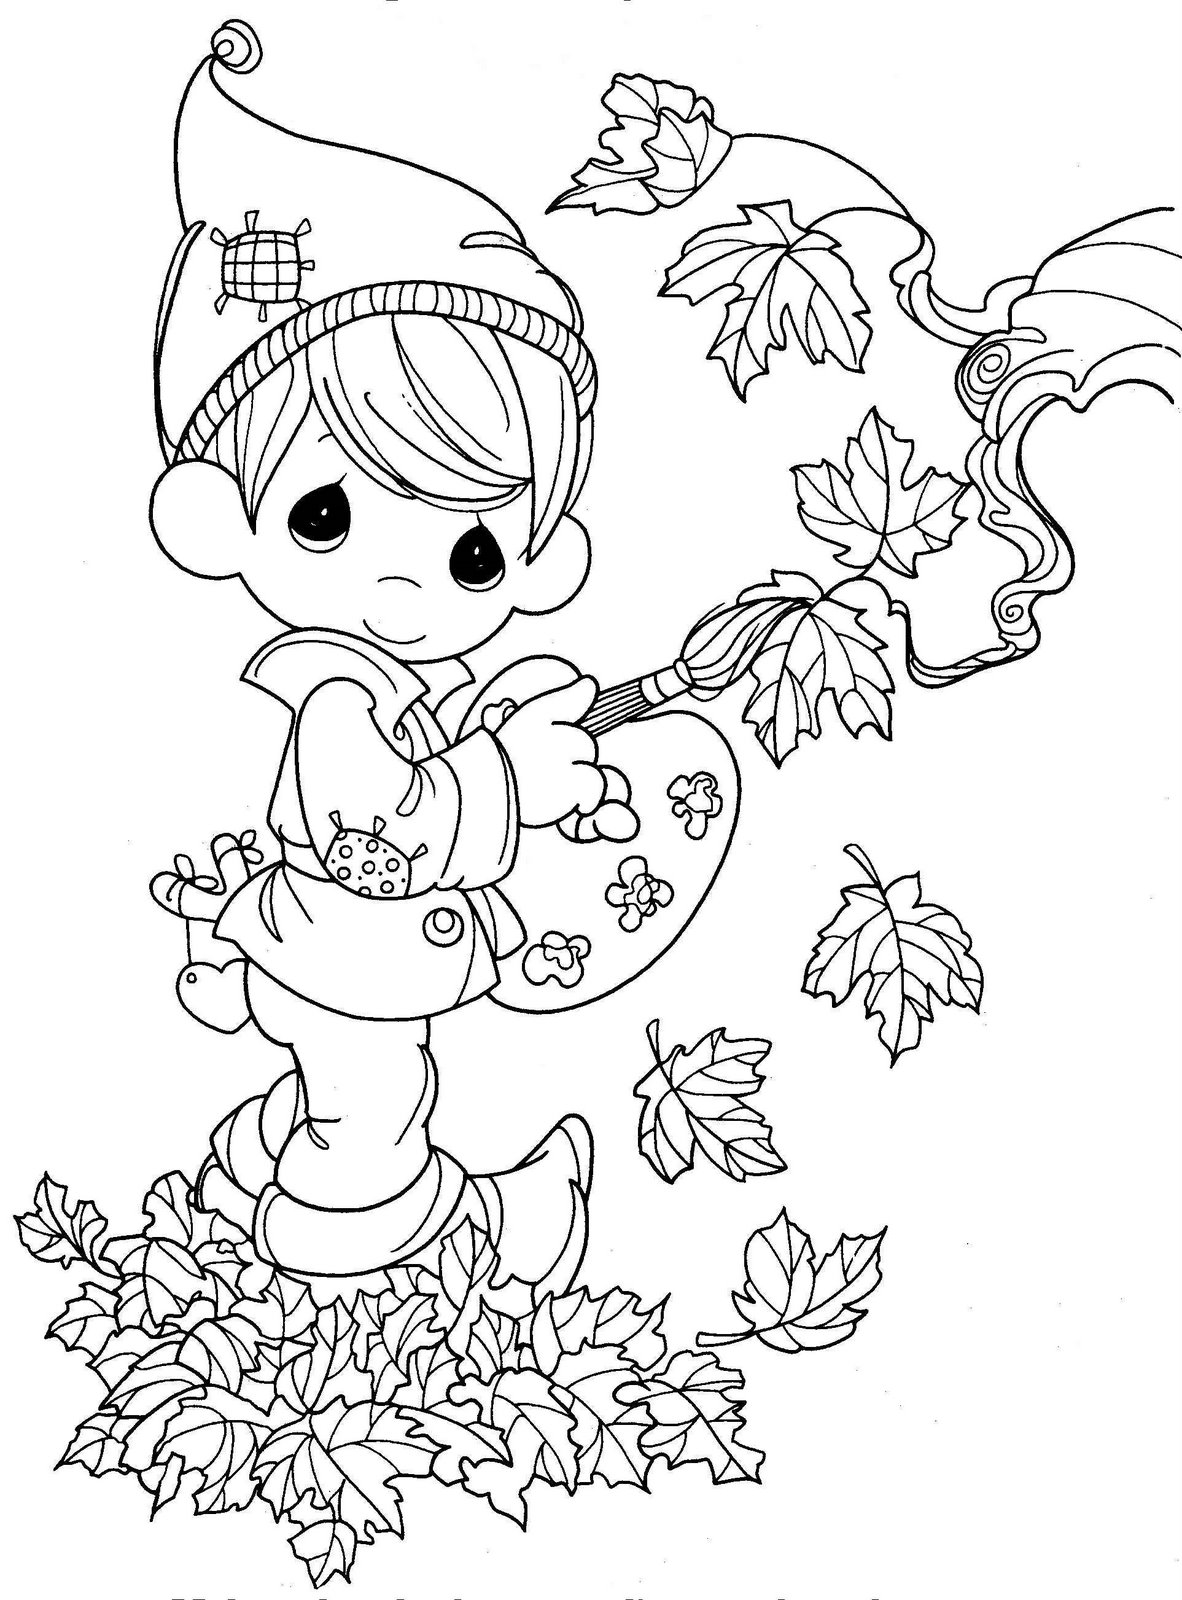 free fall printable coloring pages free printable fall coloring pages for kids best printable coloring free fall pages